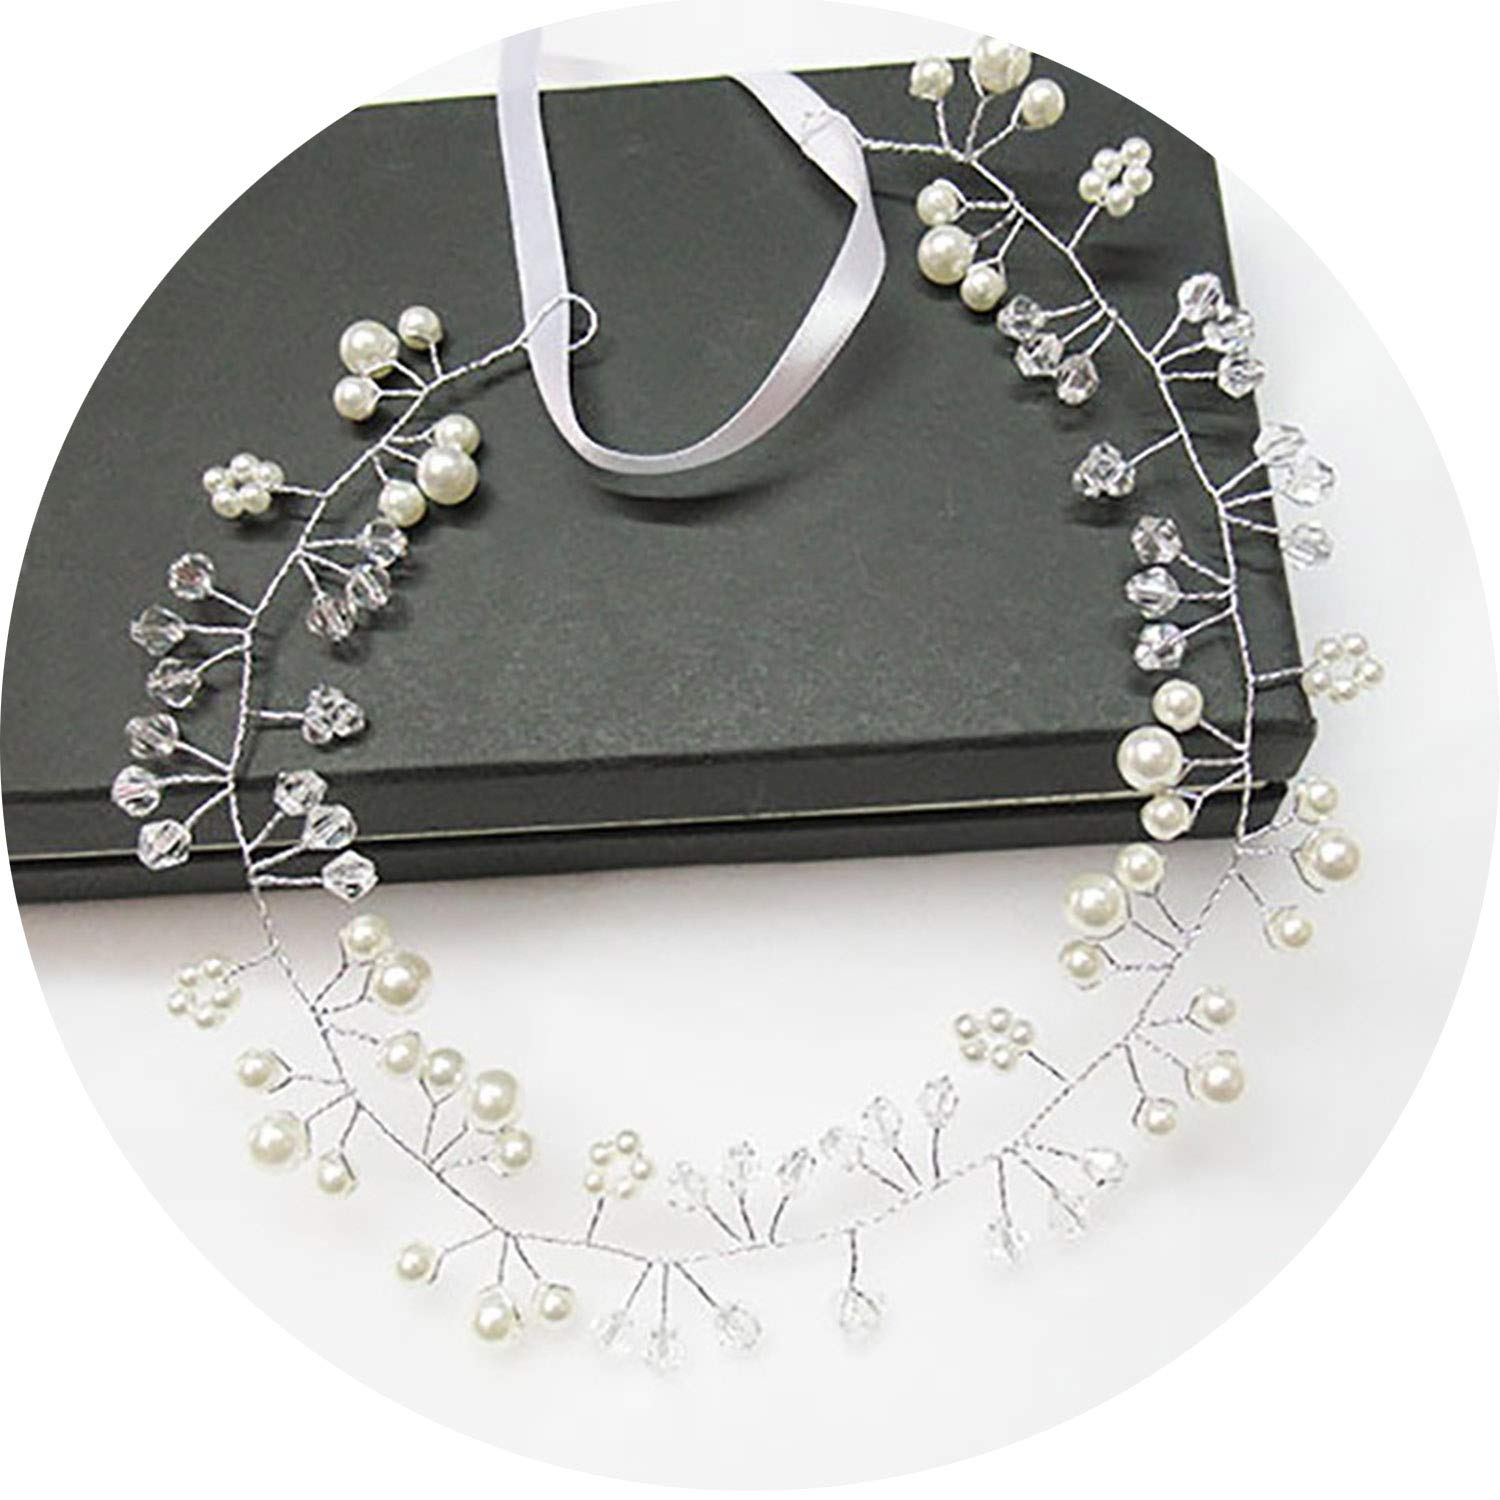 Wedding Headdress Simulated Pearl Hair Accessories for Bride Crystal Crown Hairpin 6C0193,A19 60cm